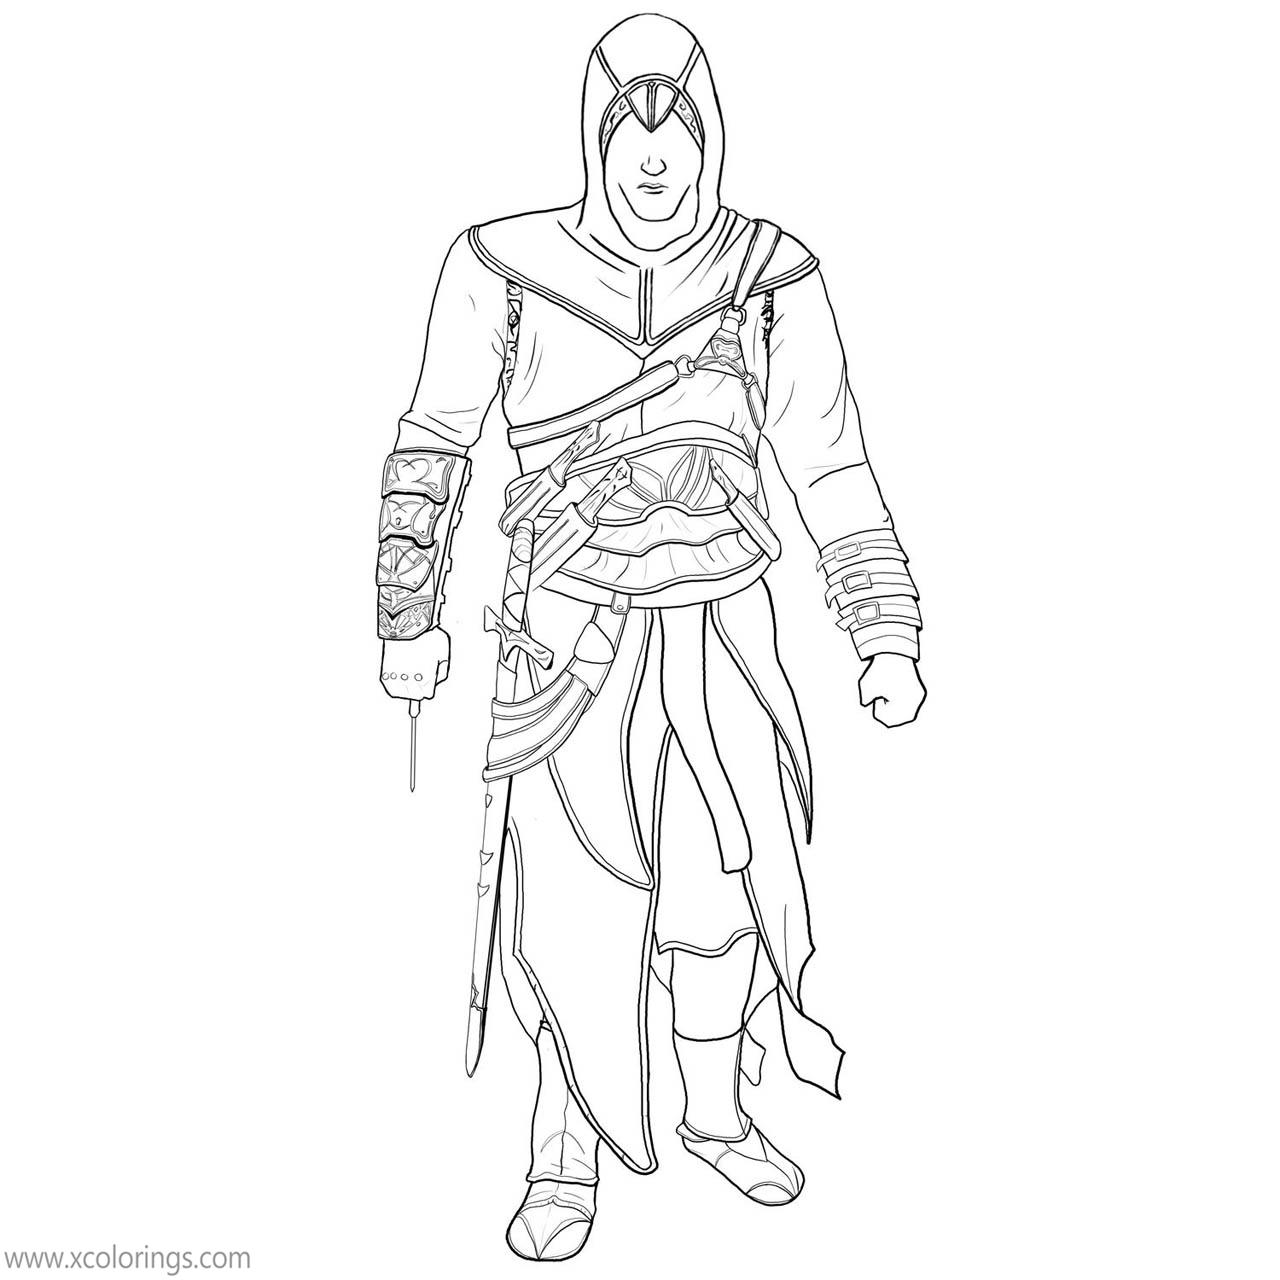 Assassin S Creed Coloring Pages Altair Linear Xcolorings Com